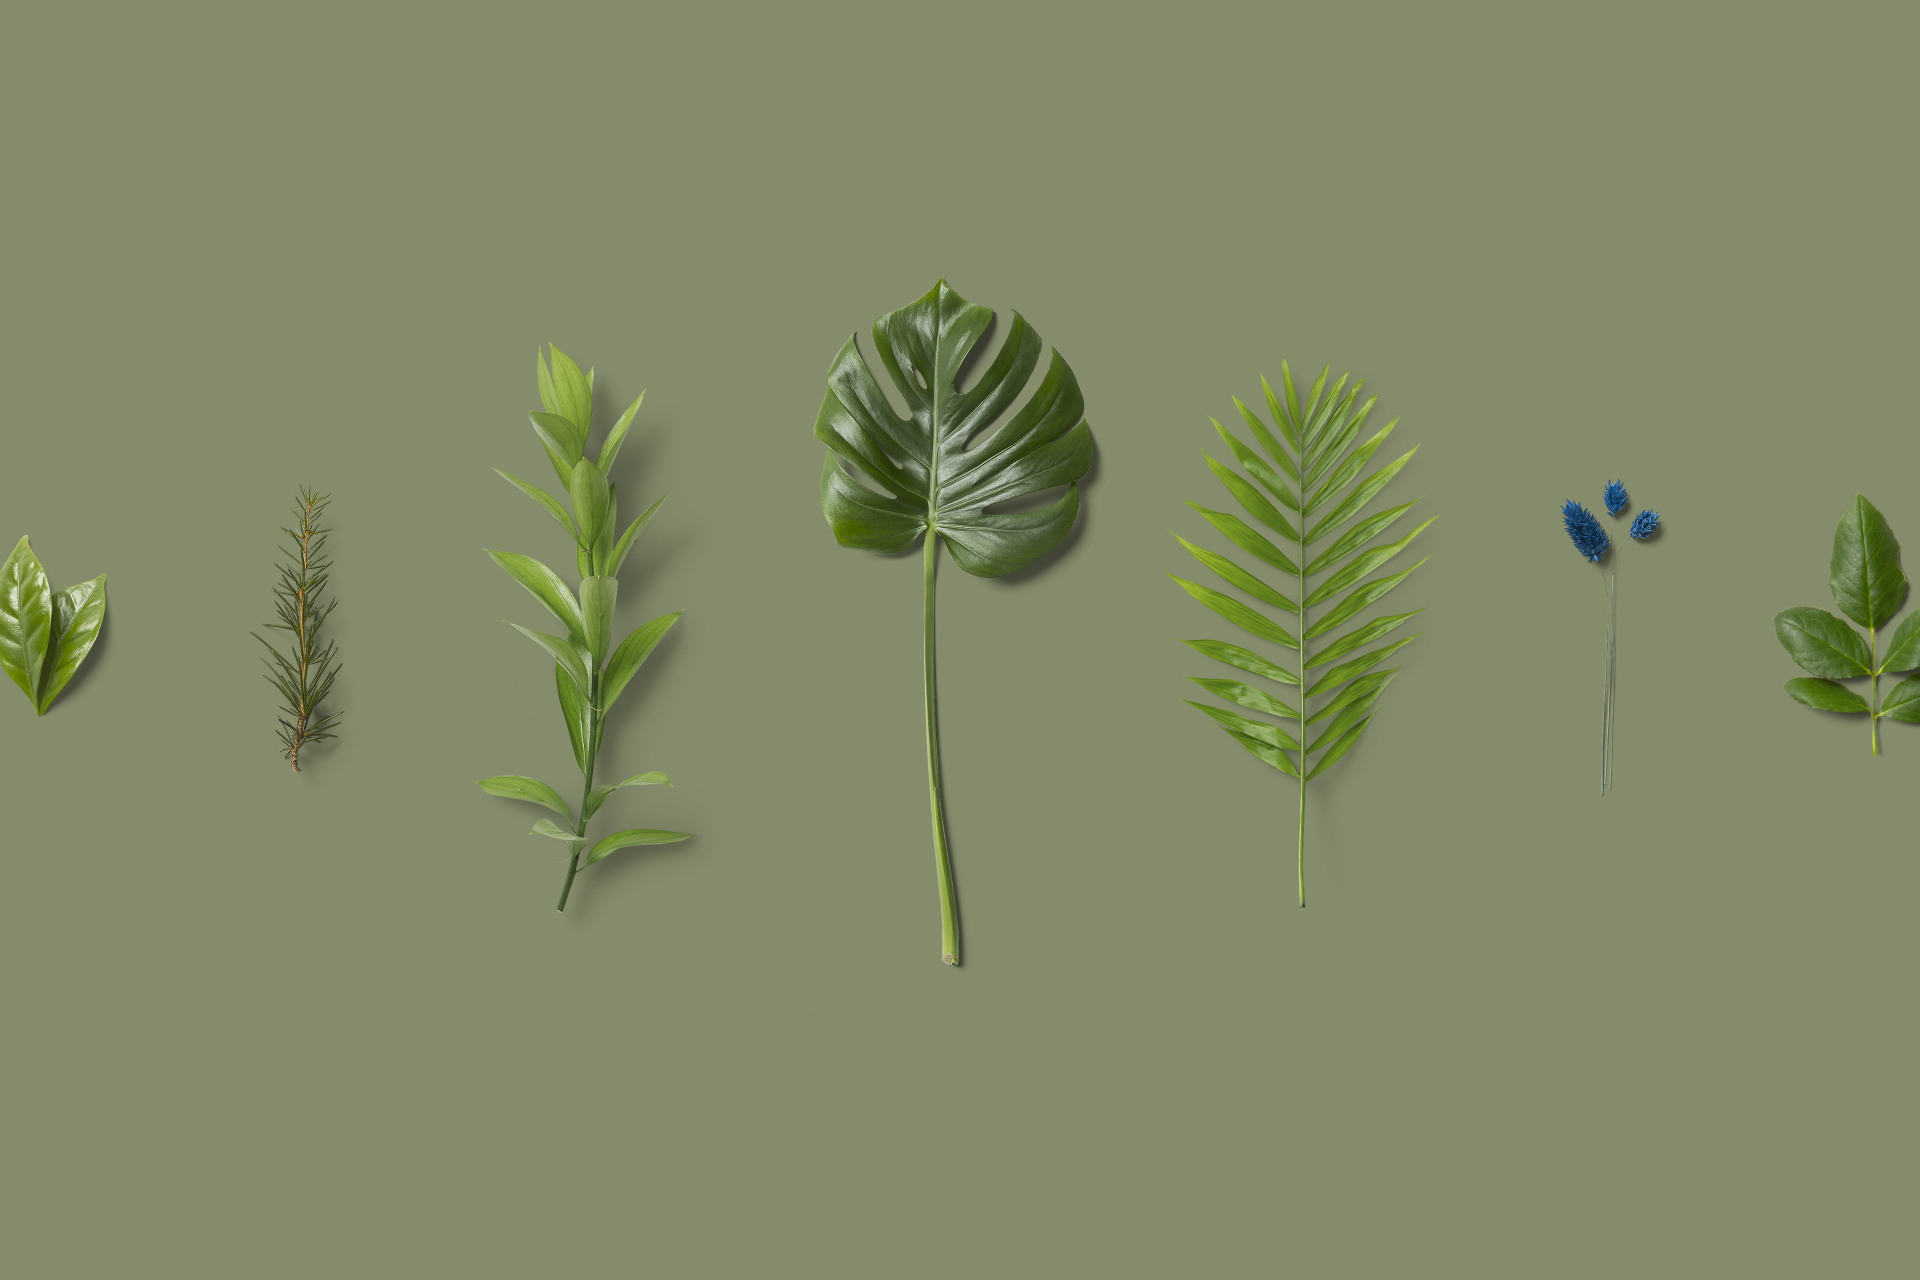 How we developed software to solve the problem of counting growing plants